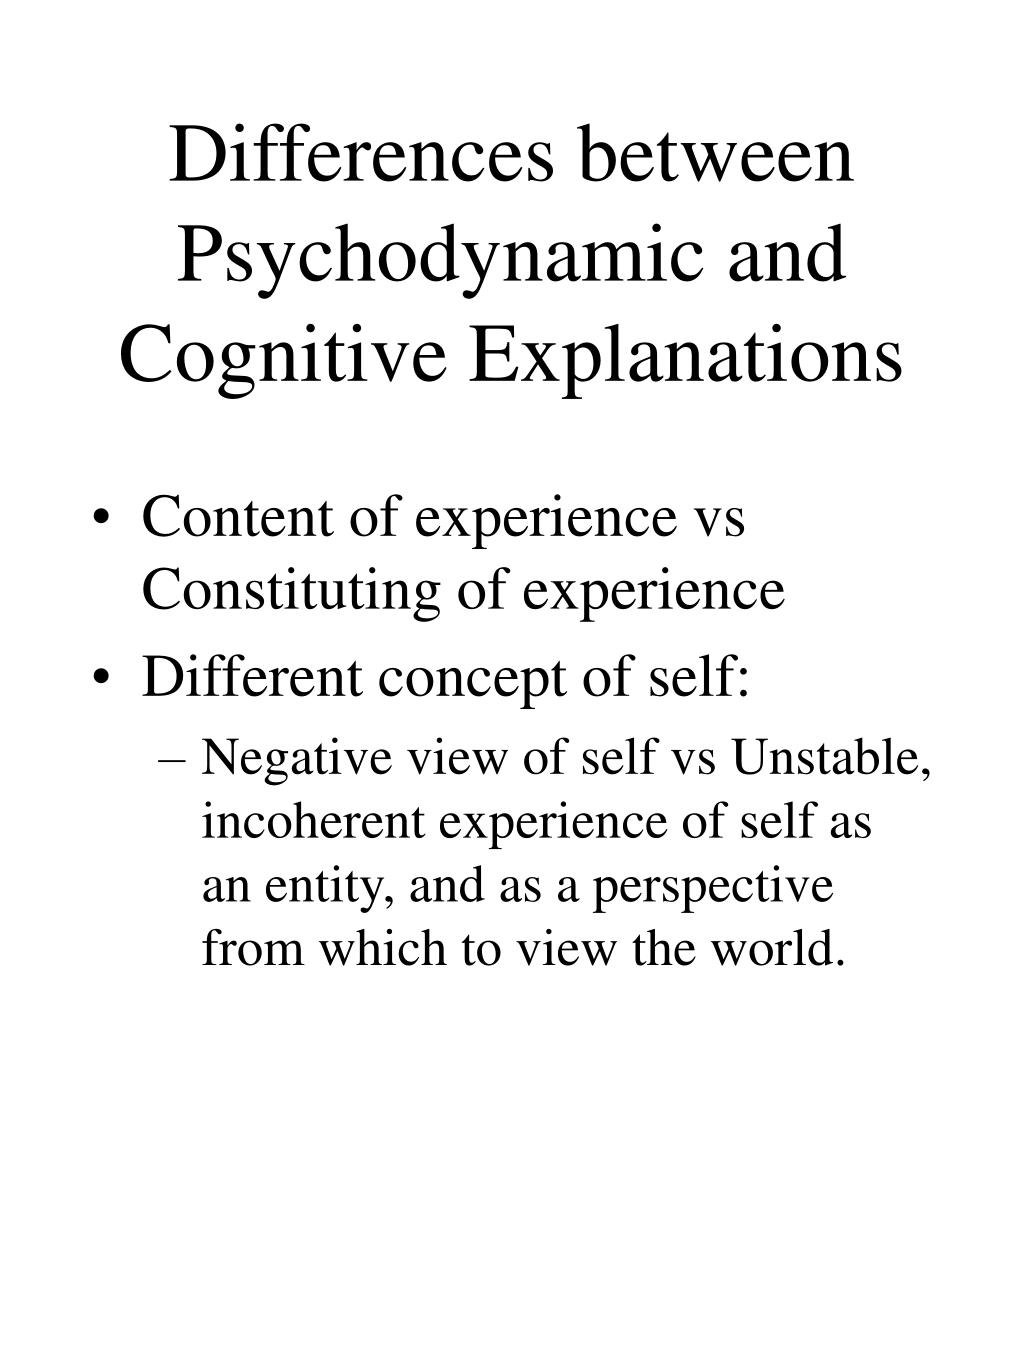 Differences between Psychodynamic and Cognitive Explanations